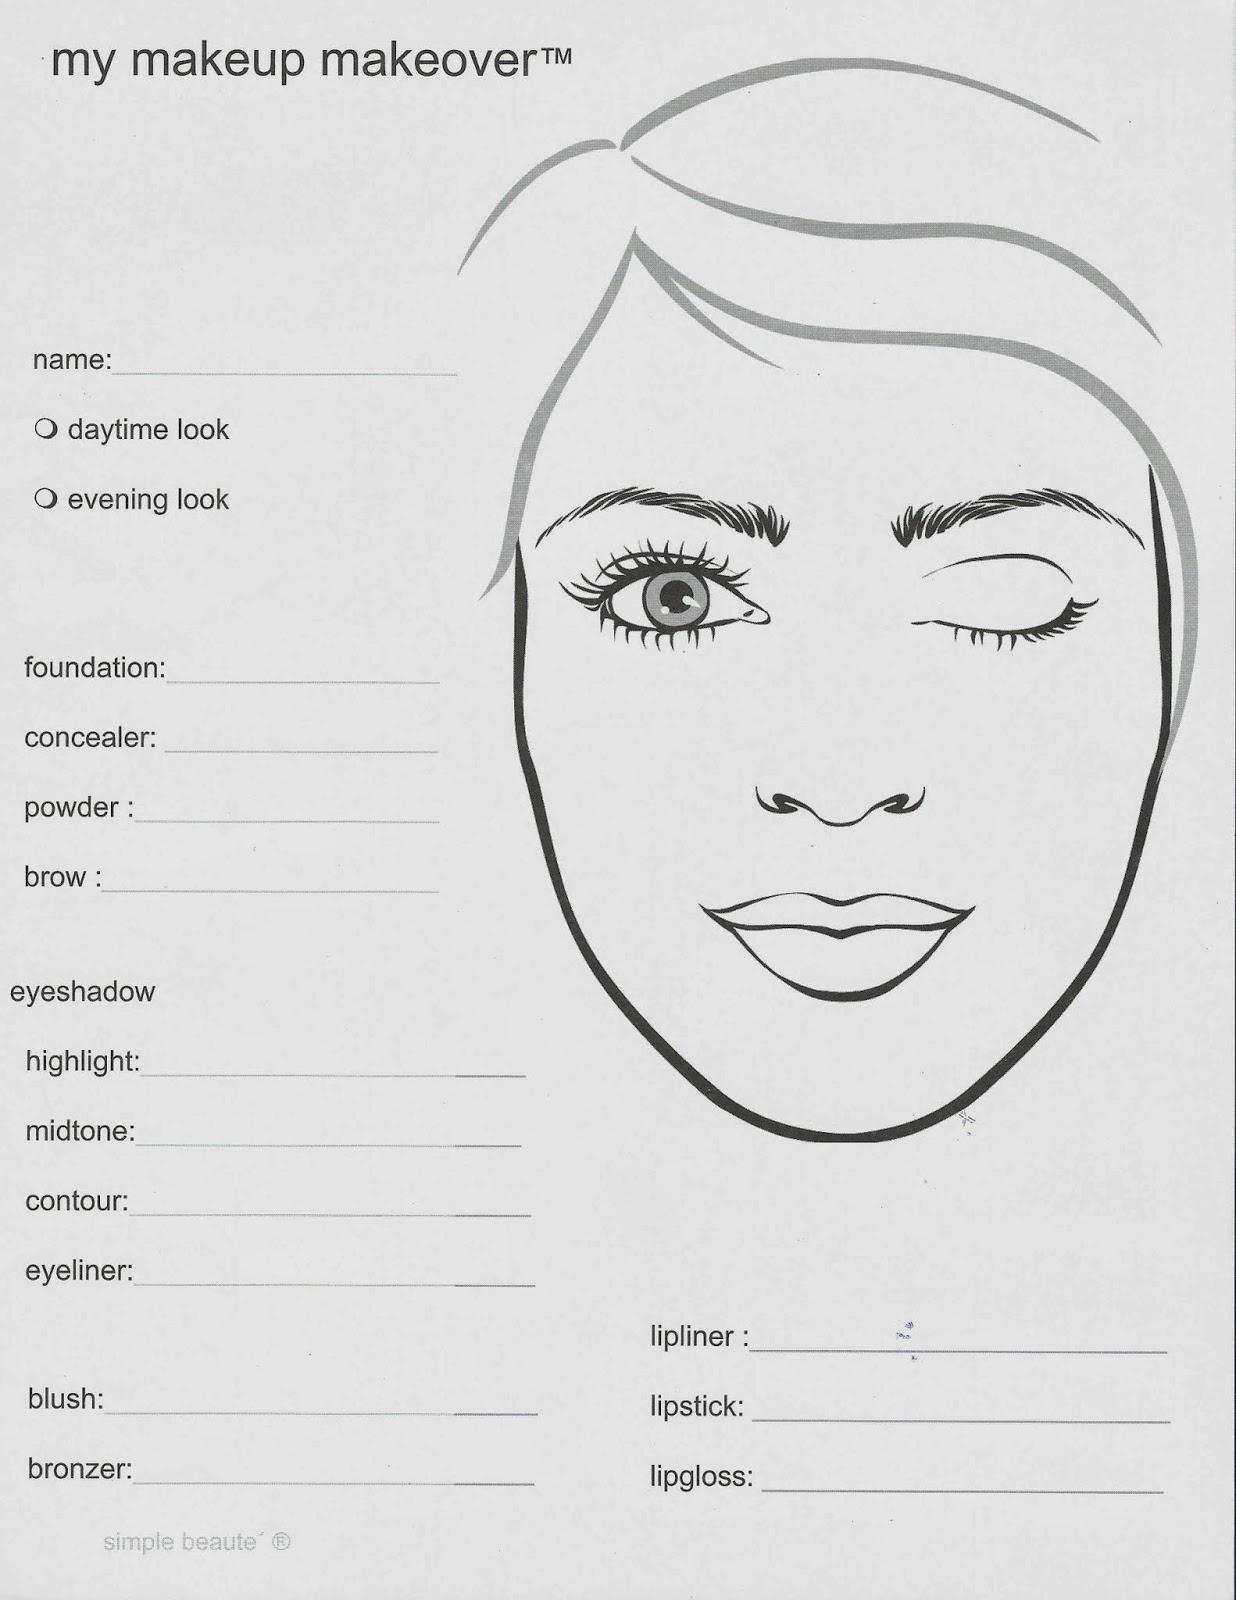 Blank Face Templates Nada Almansoori Almansoorinada On Pinterest